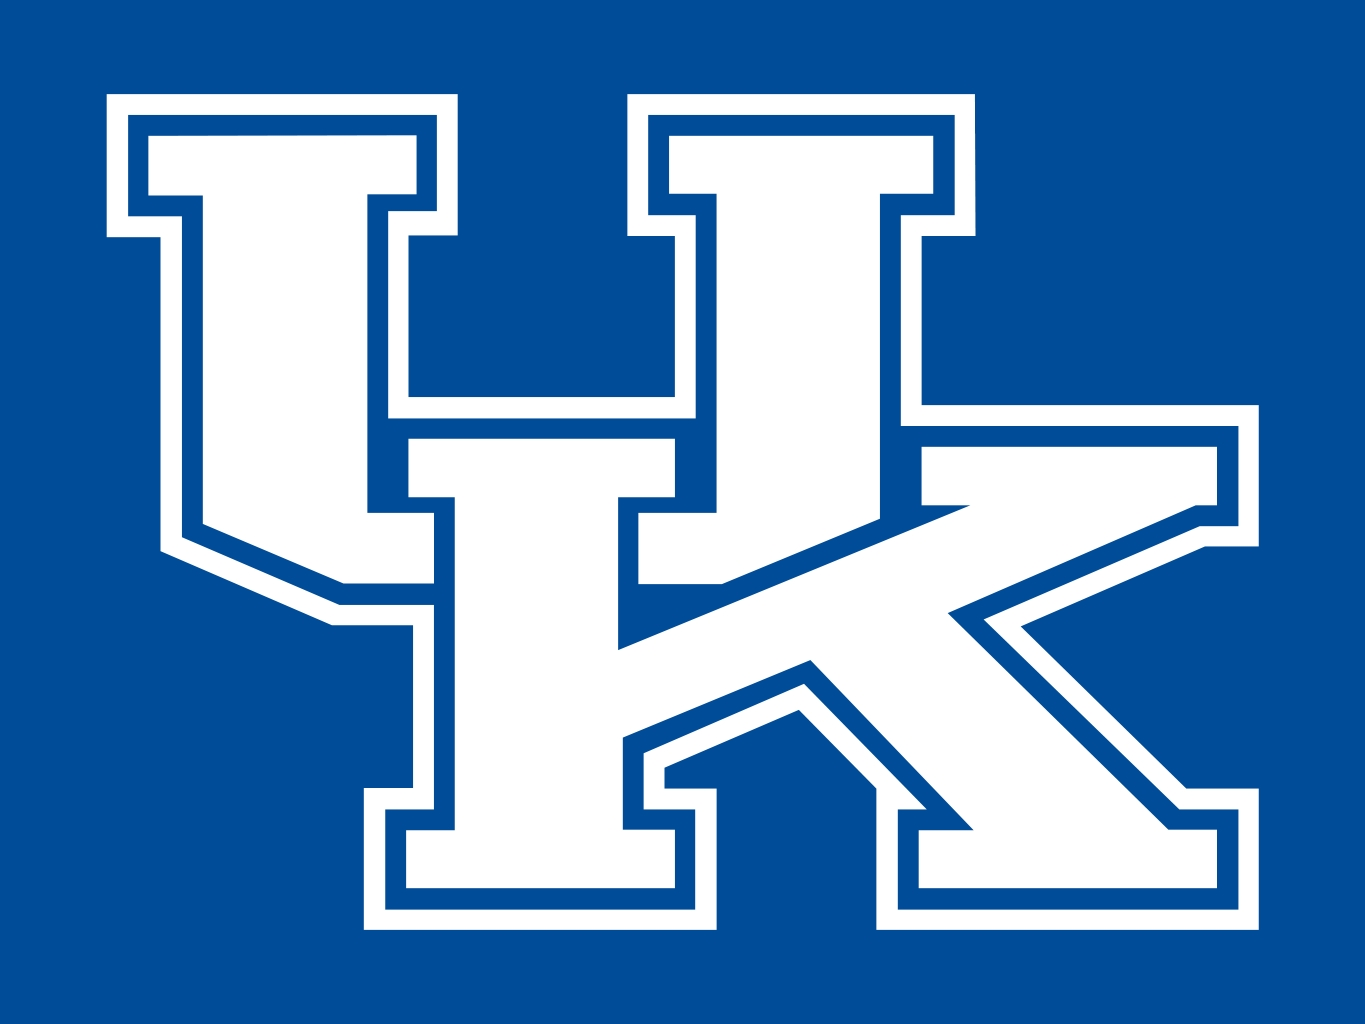 Uk basketball clipart.